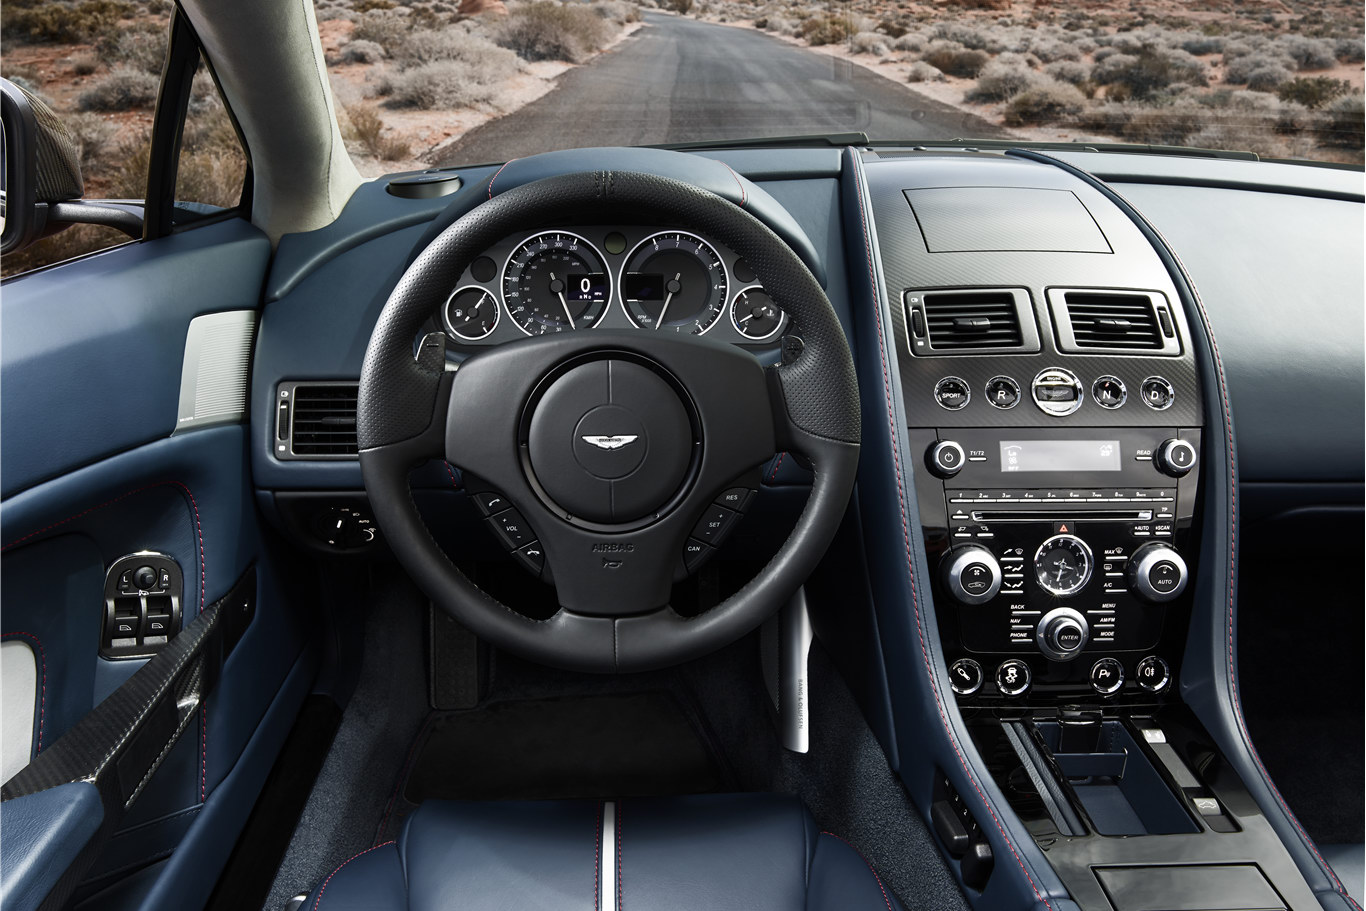 Aston Martin Cars - News: V12 Vantage S Roadster unveiled